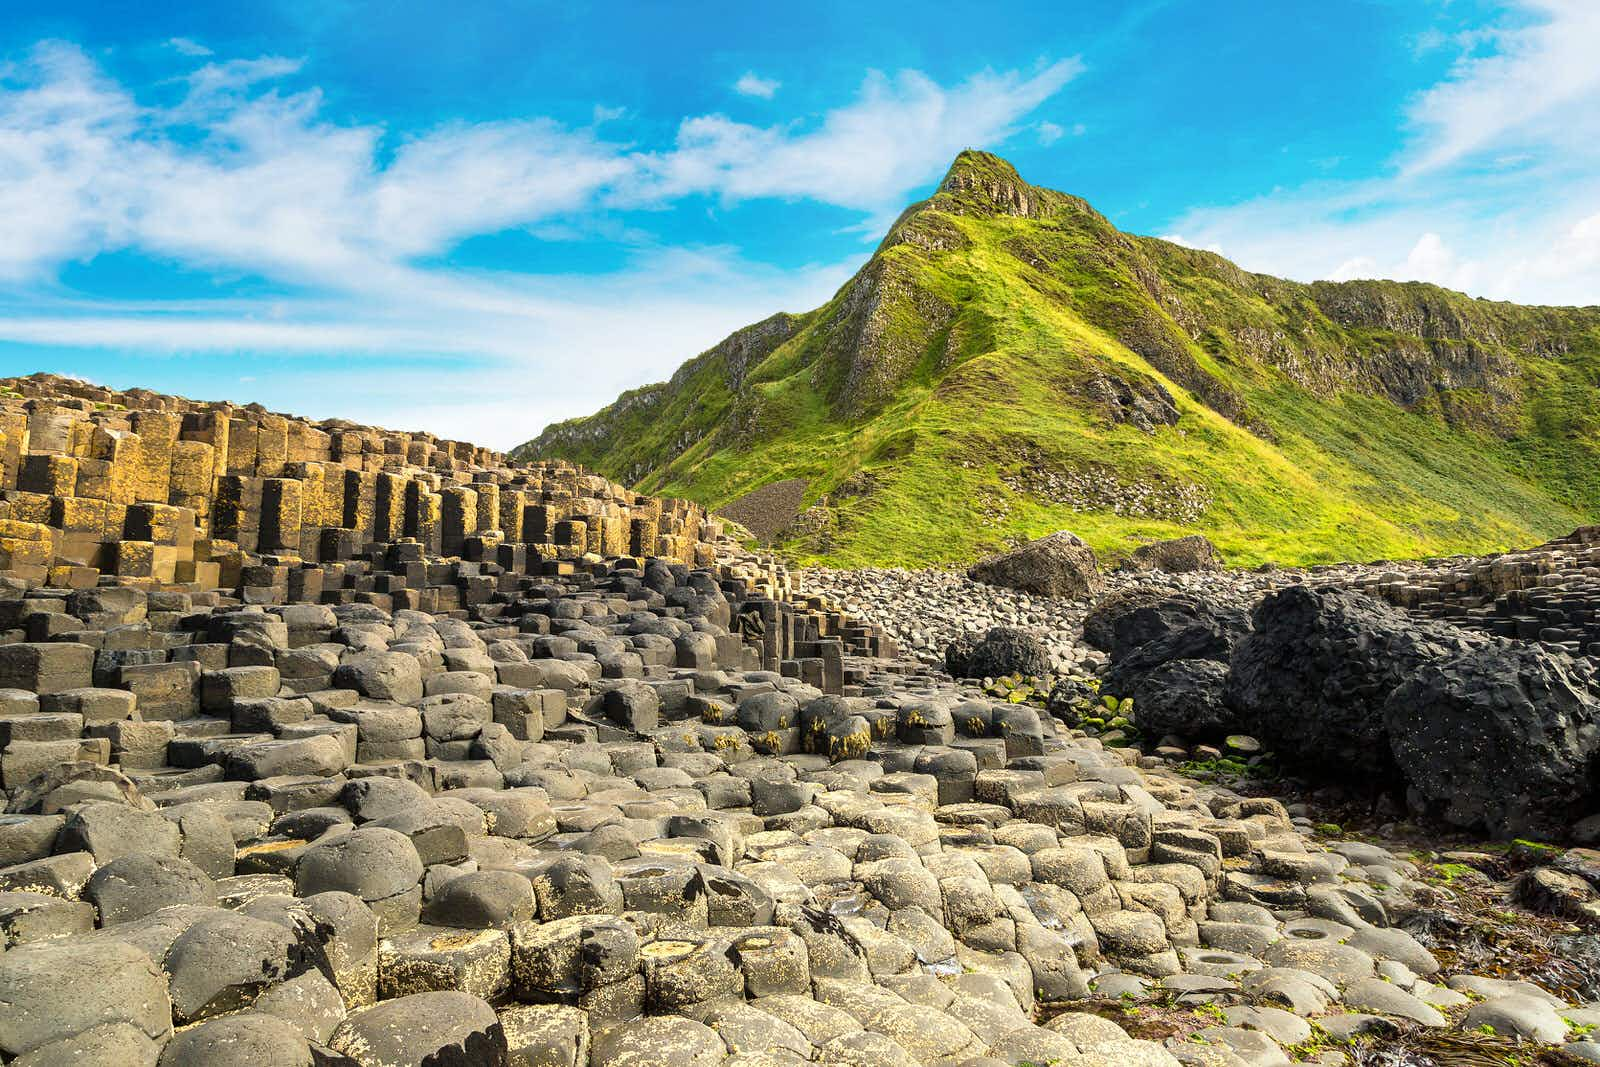 Northern Ireland's natural wonders include the Giant's Causeway, top of many a first-timer's wishlist © S-F / Shutterstock